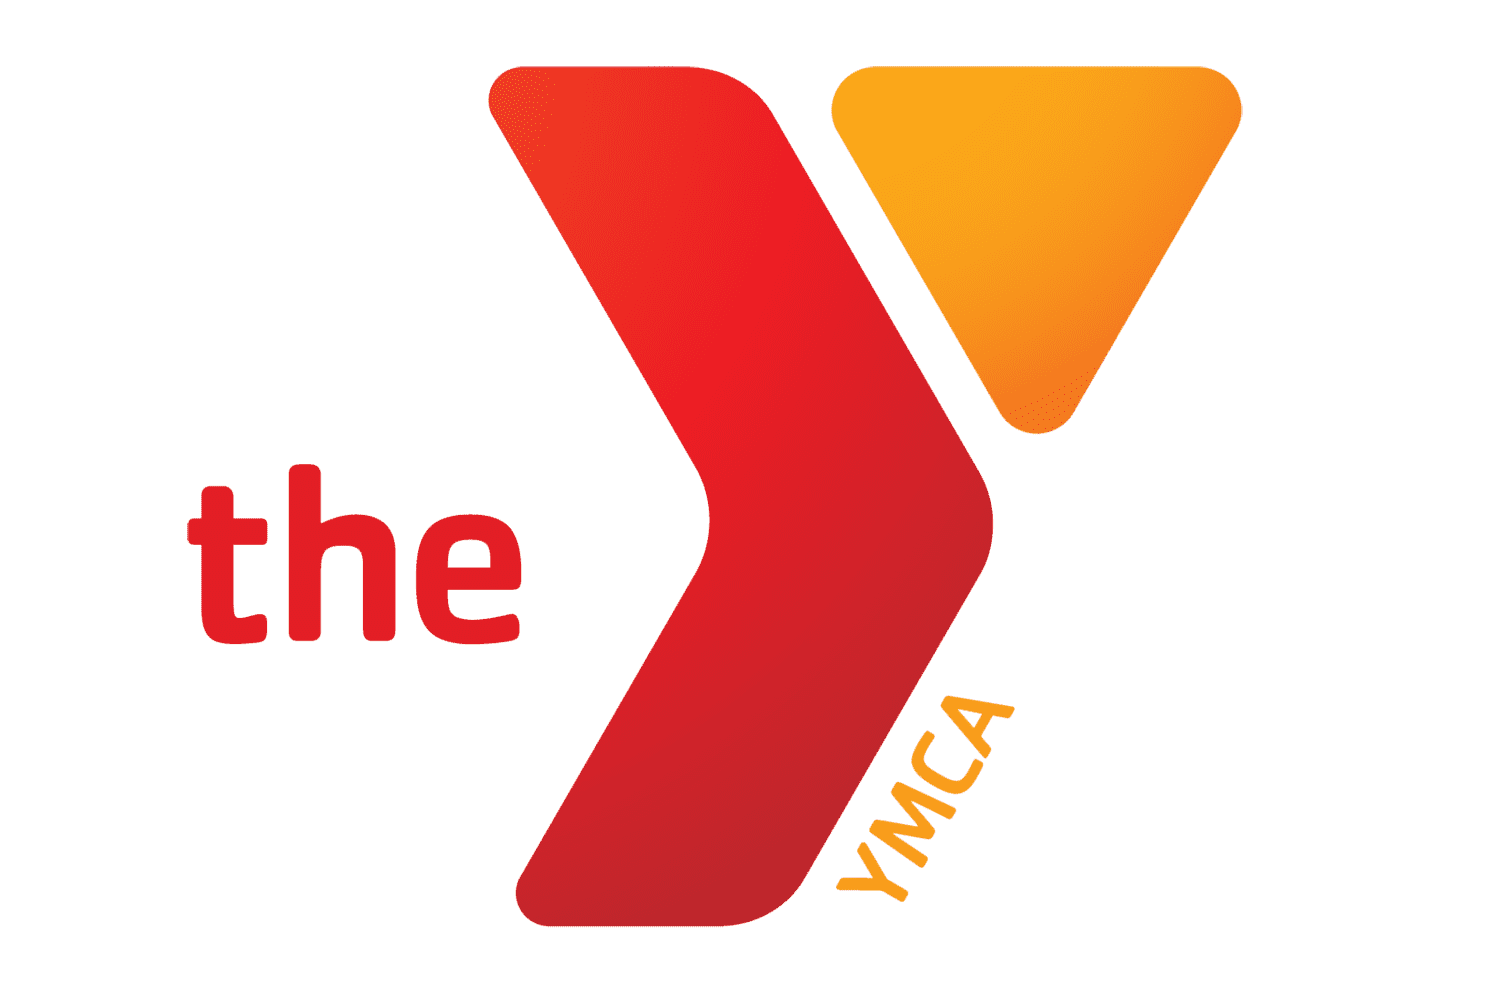 https://secureservercdn.net/198.71.233.214/0b3.a7e.myftpupload.com/wp-content/uploads/2018/06/YMCA-Logo.png